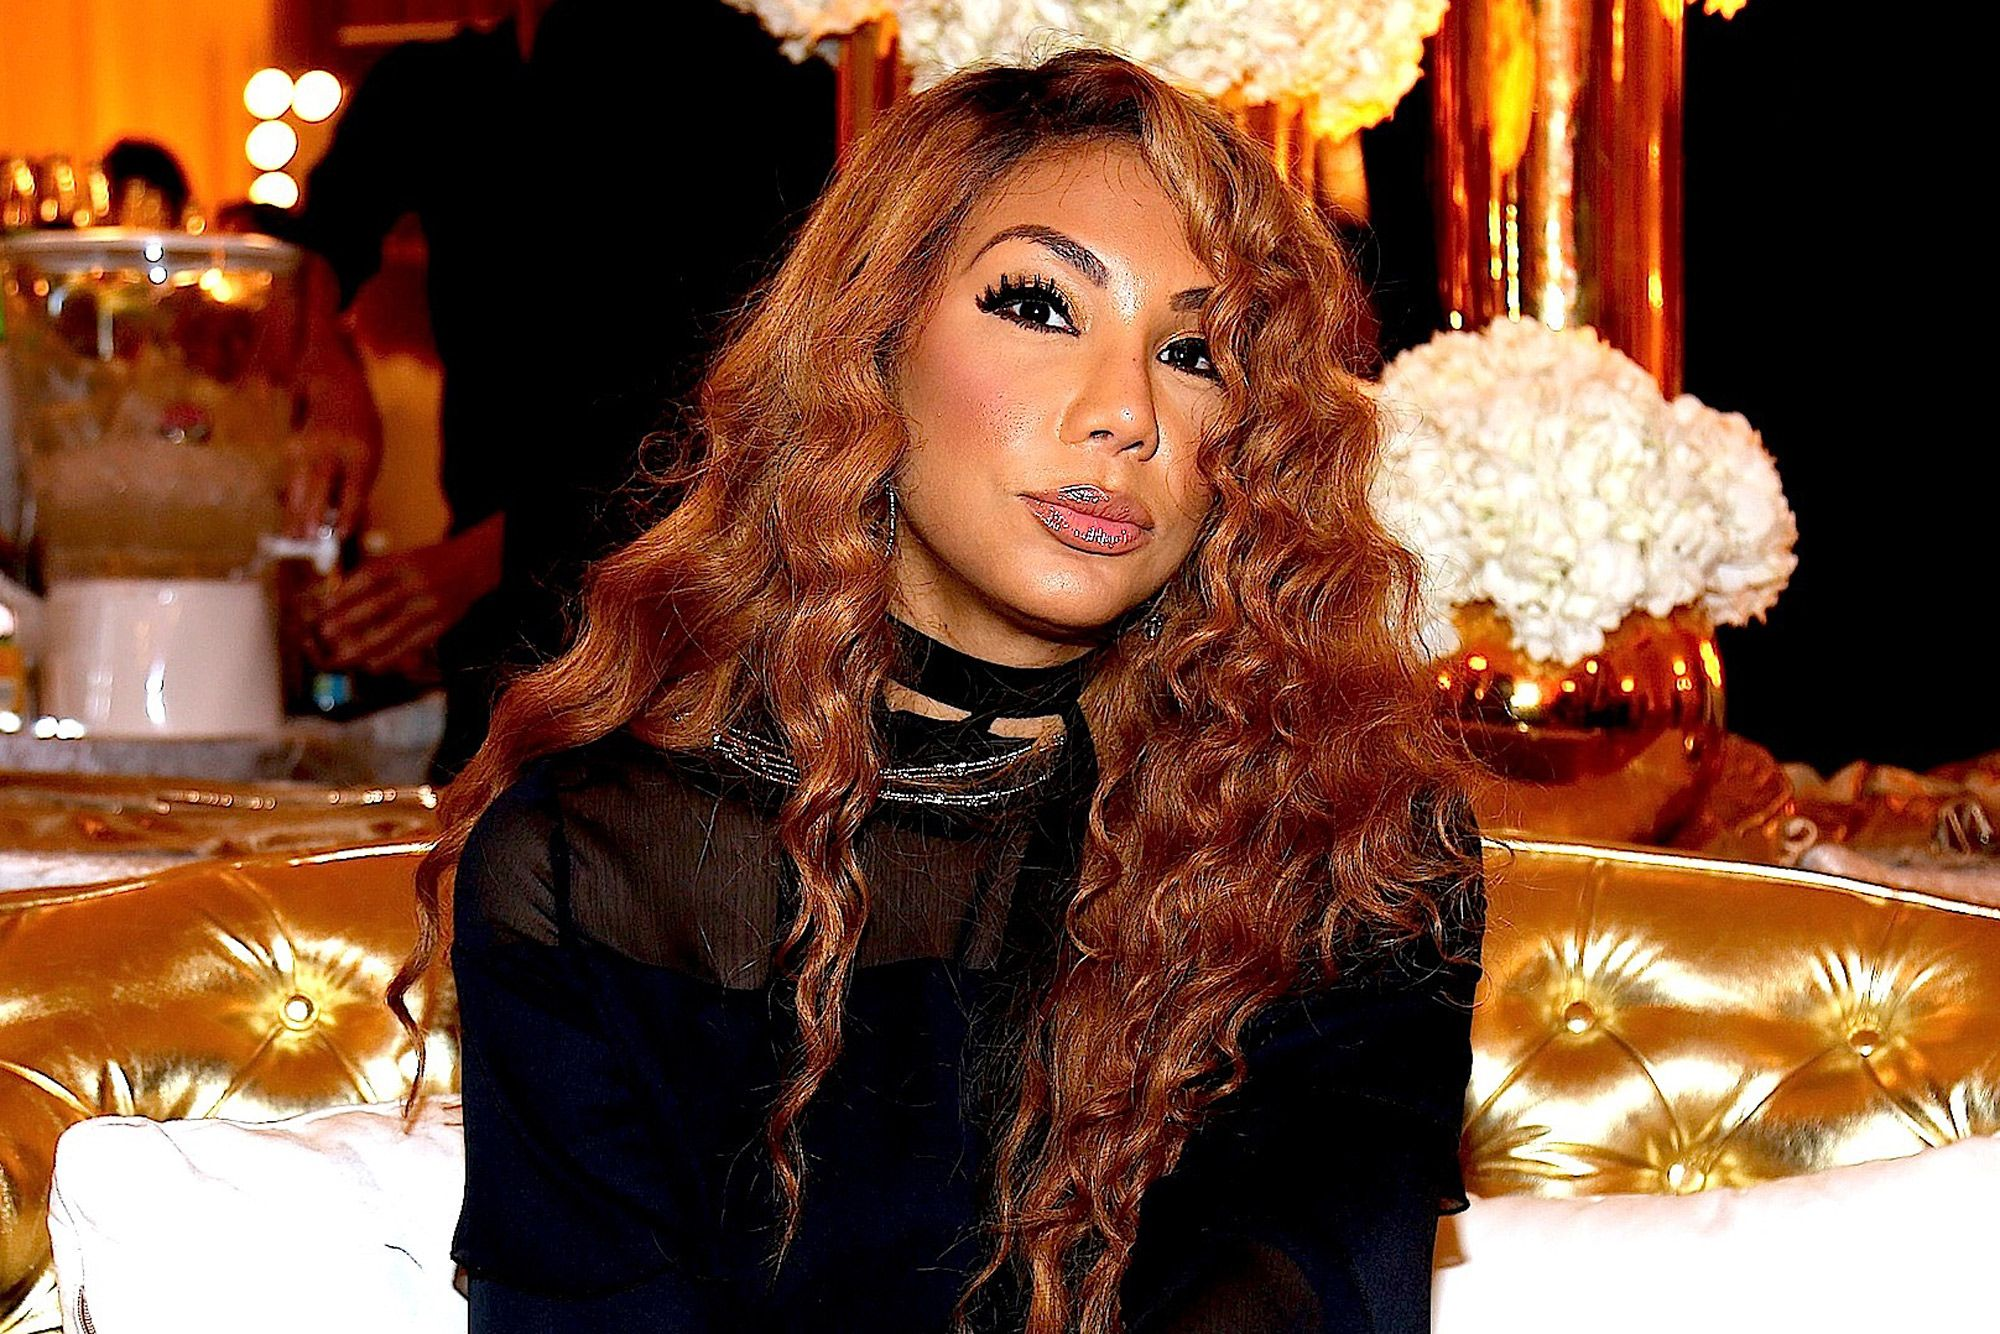 Tamar Braxton Shares A Last Minute Gift Guide For Fans – See Her Video